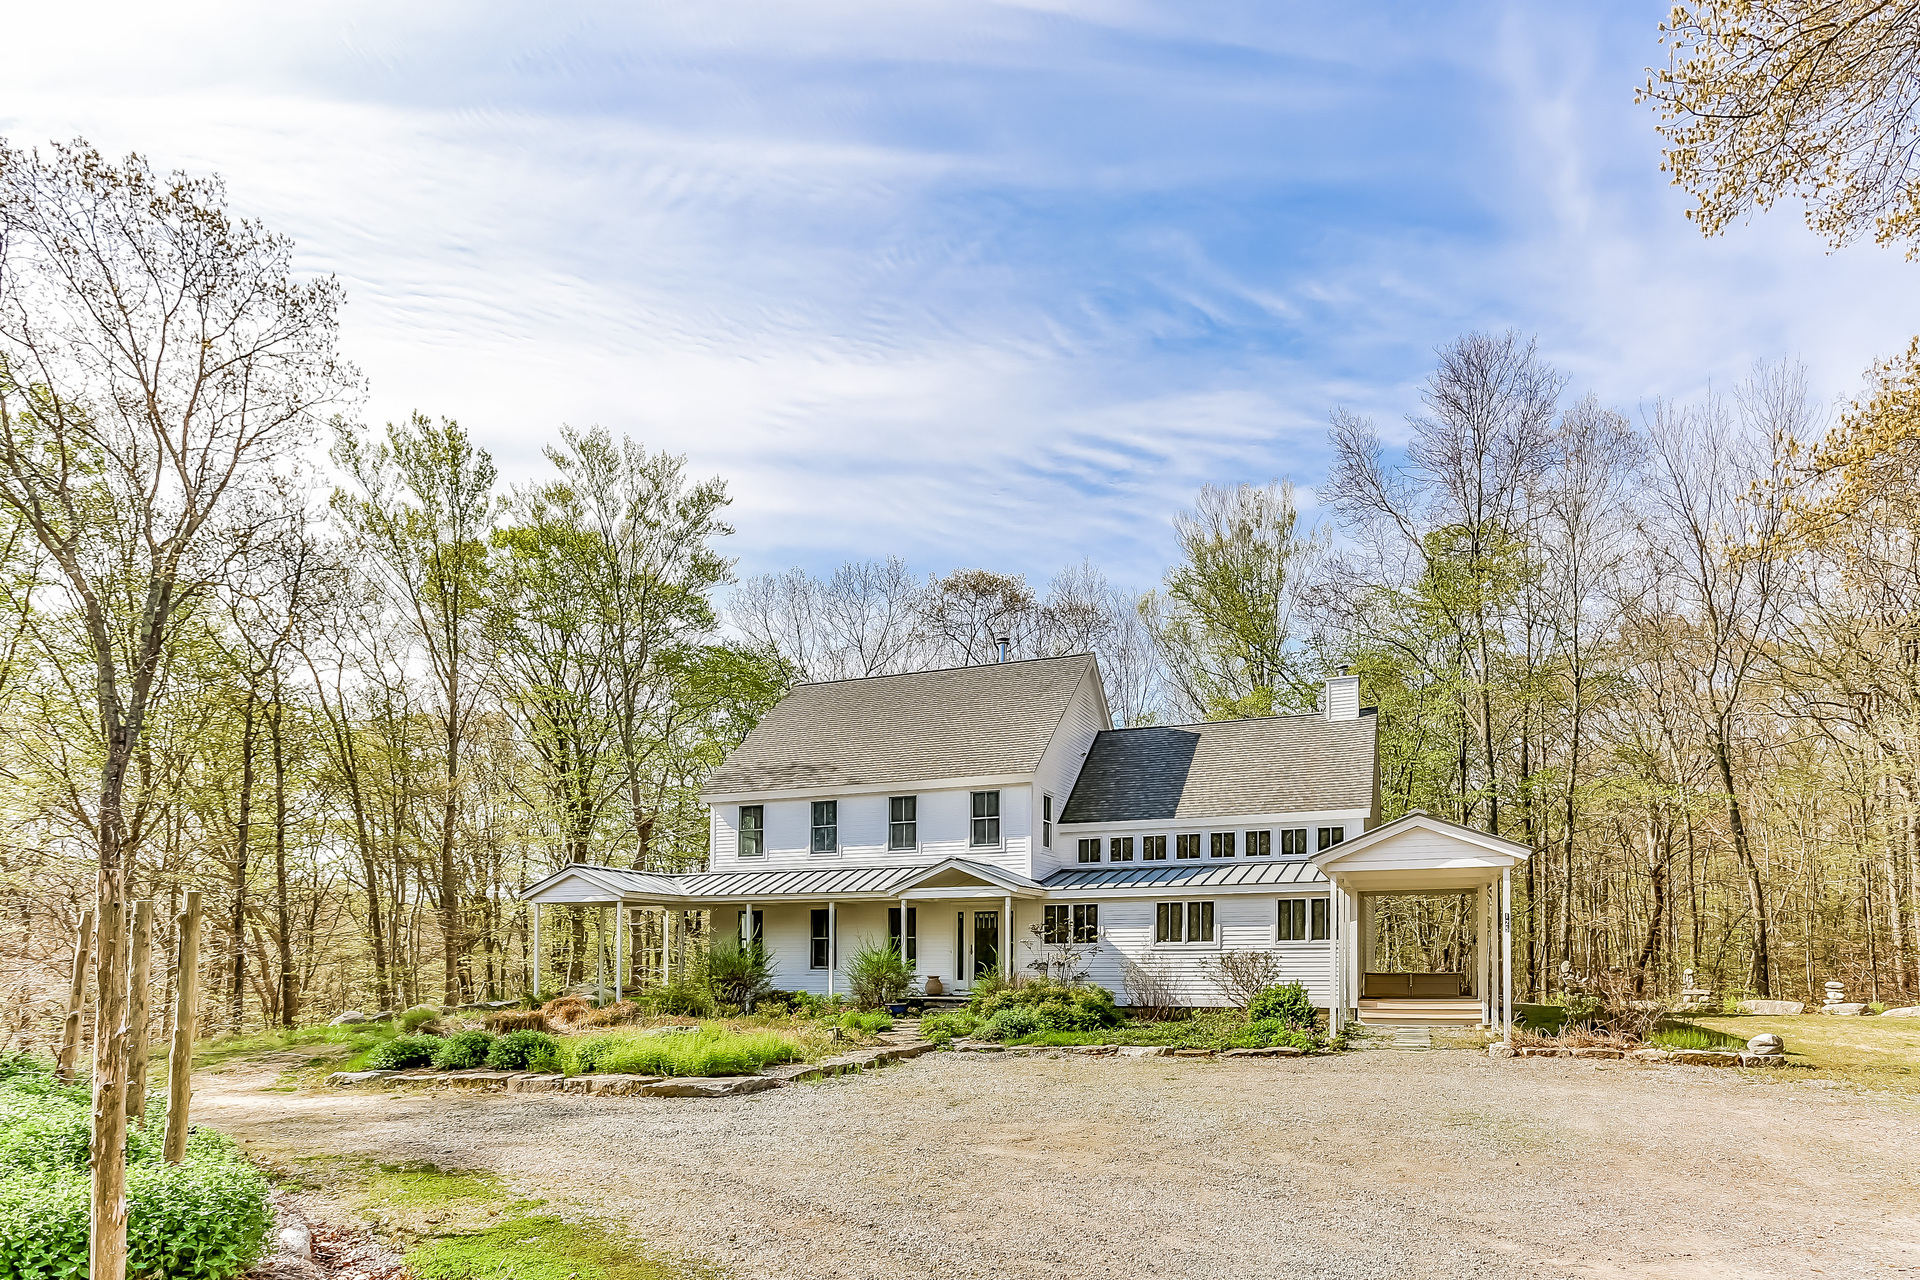 Einfamilienhaus für Verkauf beim Custom built home designed to blend the natural landscape with state of the art 125 Fishtown Road Groton, Connecticut, 06355 Vereinigte Staaten